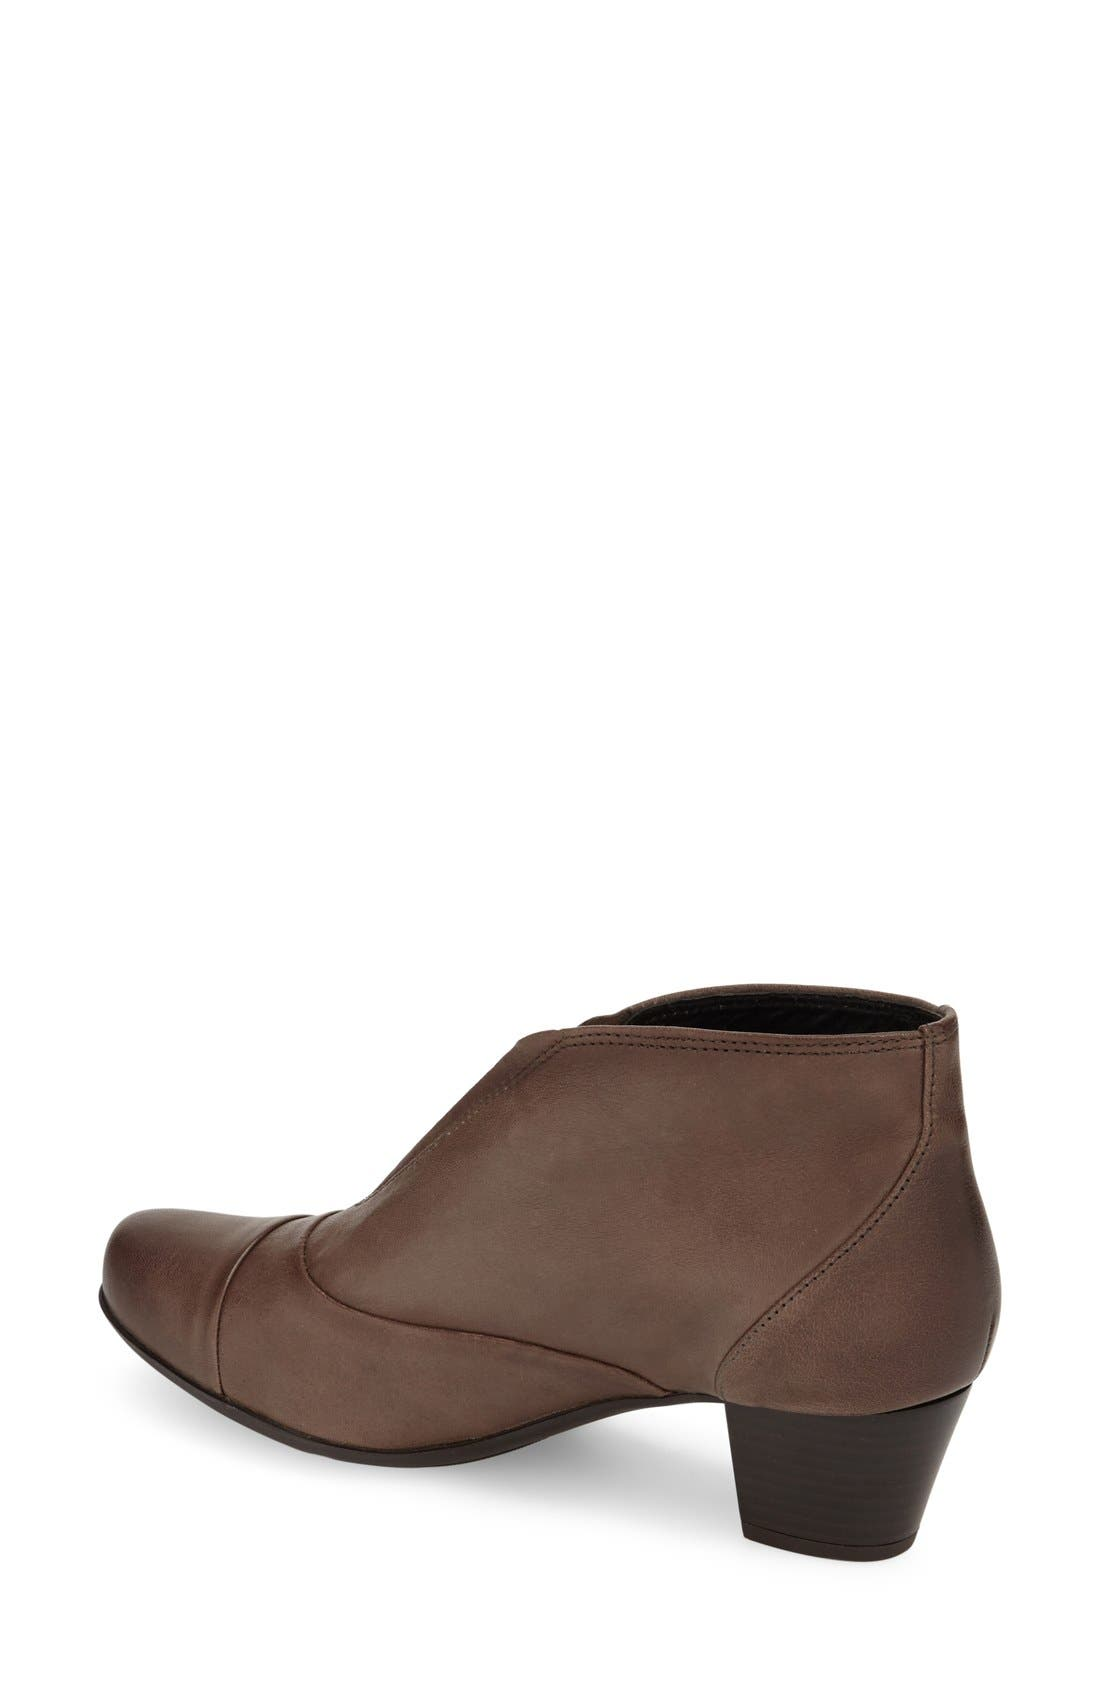 'Maddie' Bootie,                             Alternate thumbnail 2, color,                             Dark Taupe Nappa